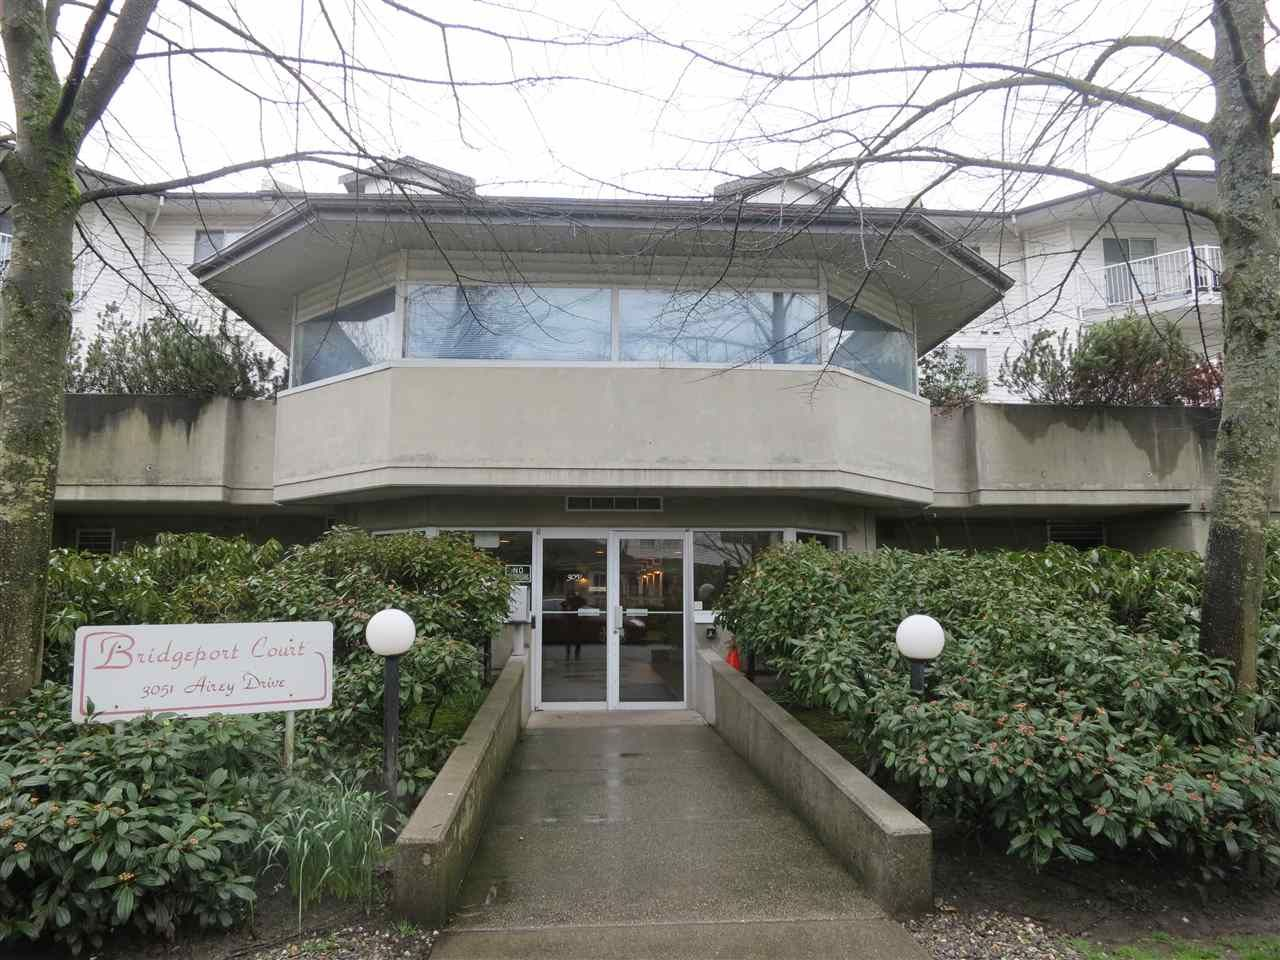 Main Photo: 106 3051 AIREY DRIVE in Richmond: West Cambie Condo for sale : MLS®# R2053164